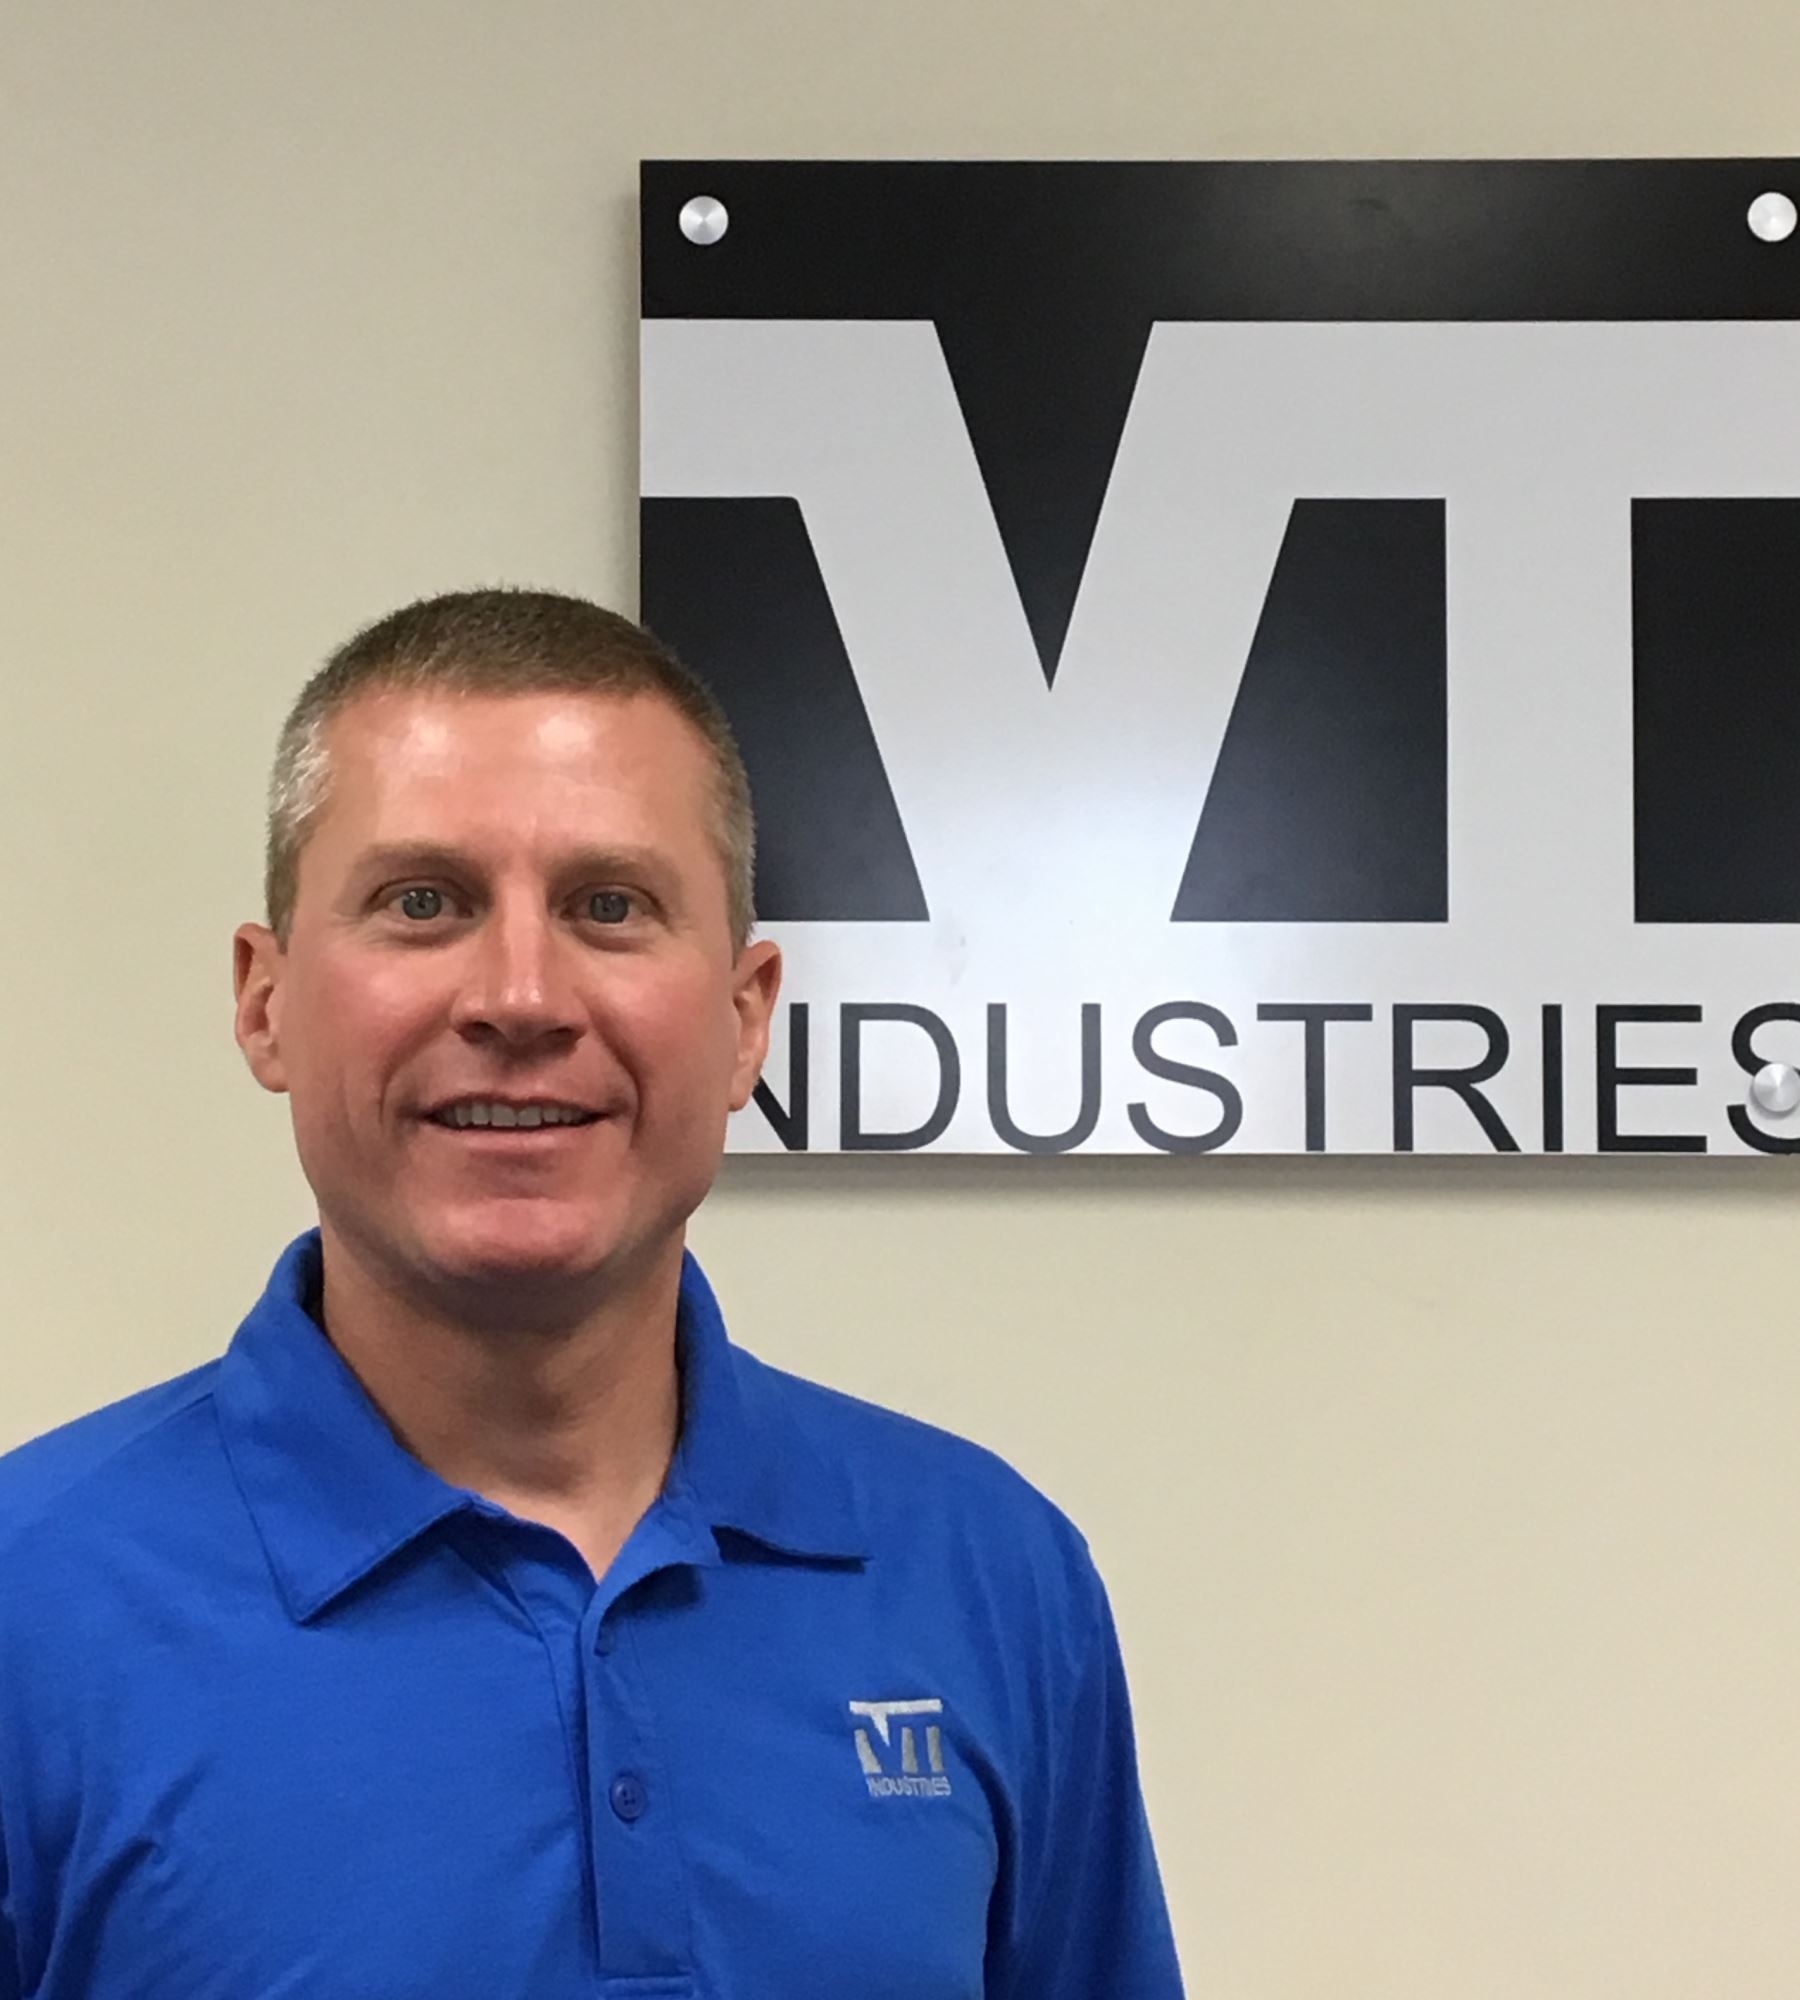 Travis Mudloff, VT Industries' Vice President of Operations